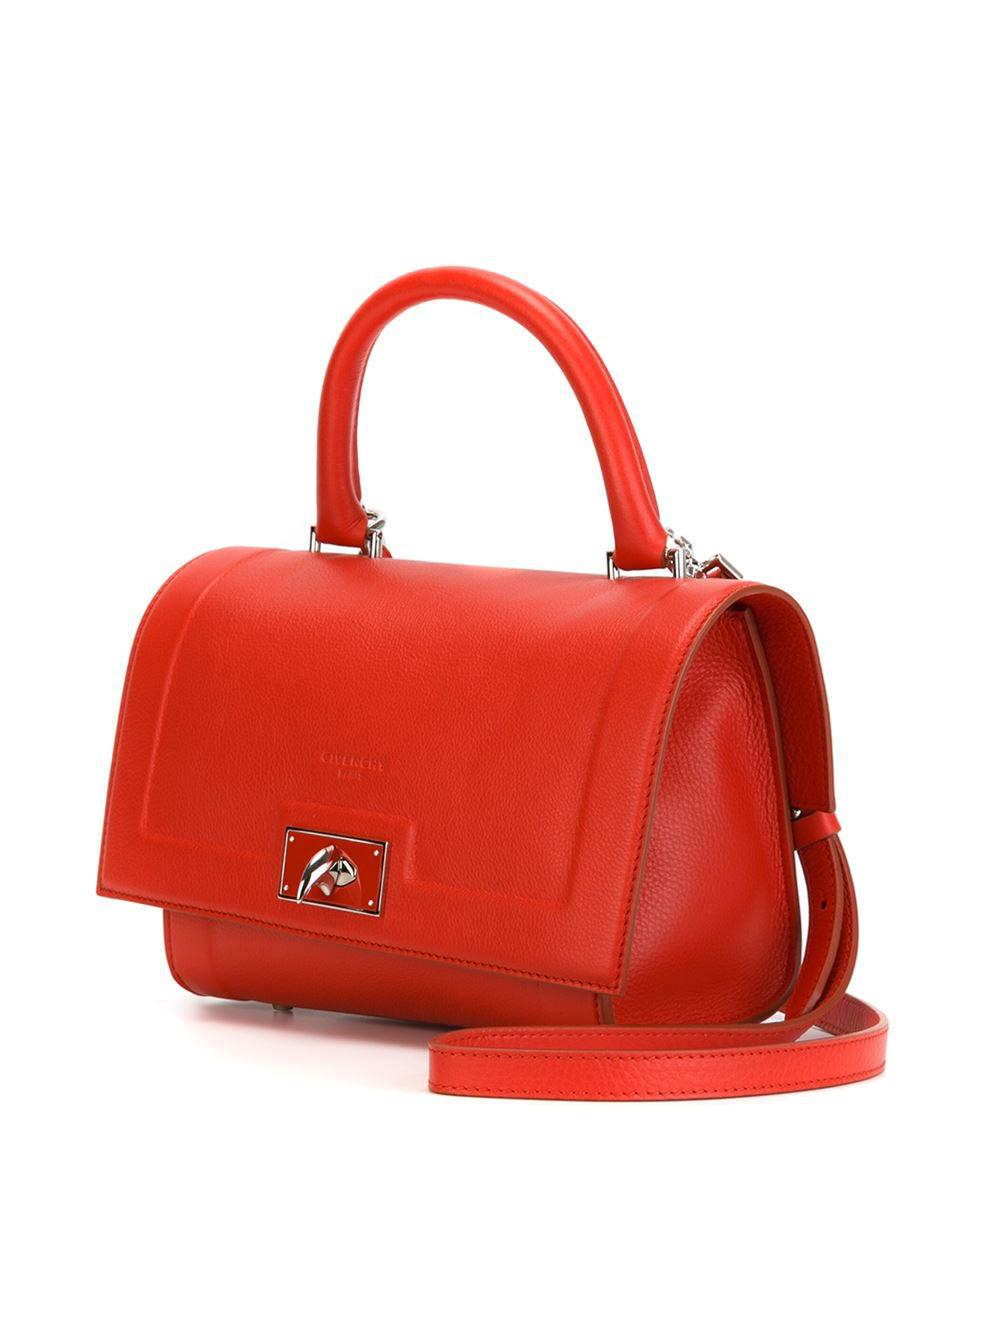 e04d84bfd626 Givenchy Shark Small Leather Tote in Red - Lyst